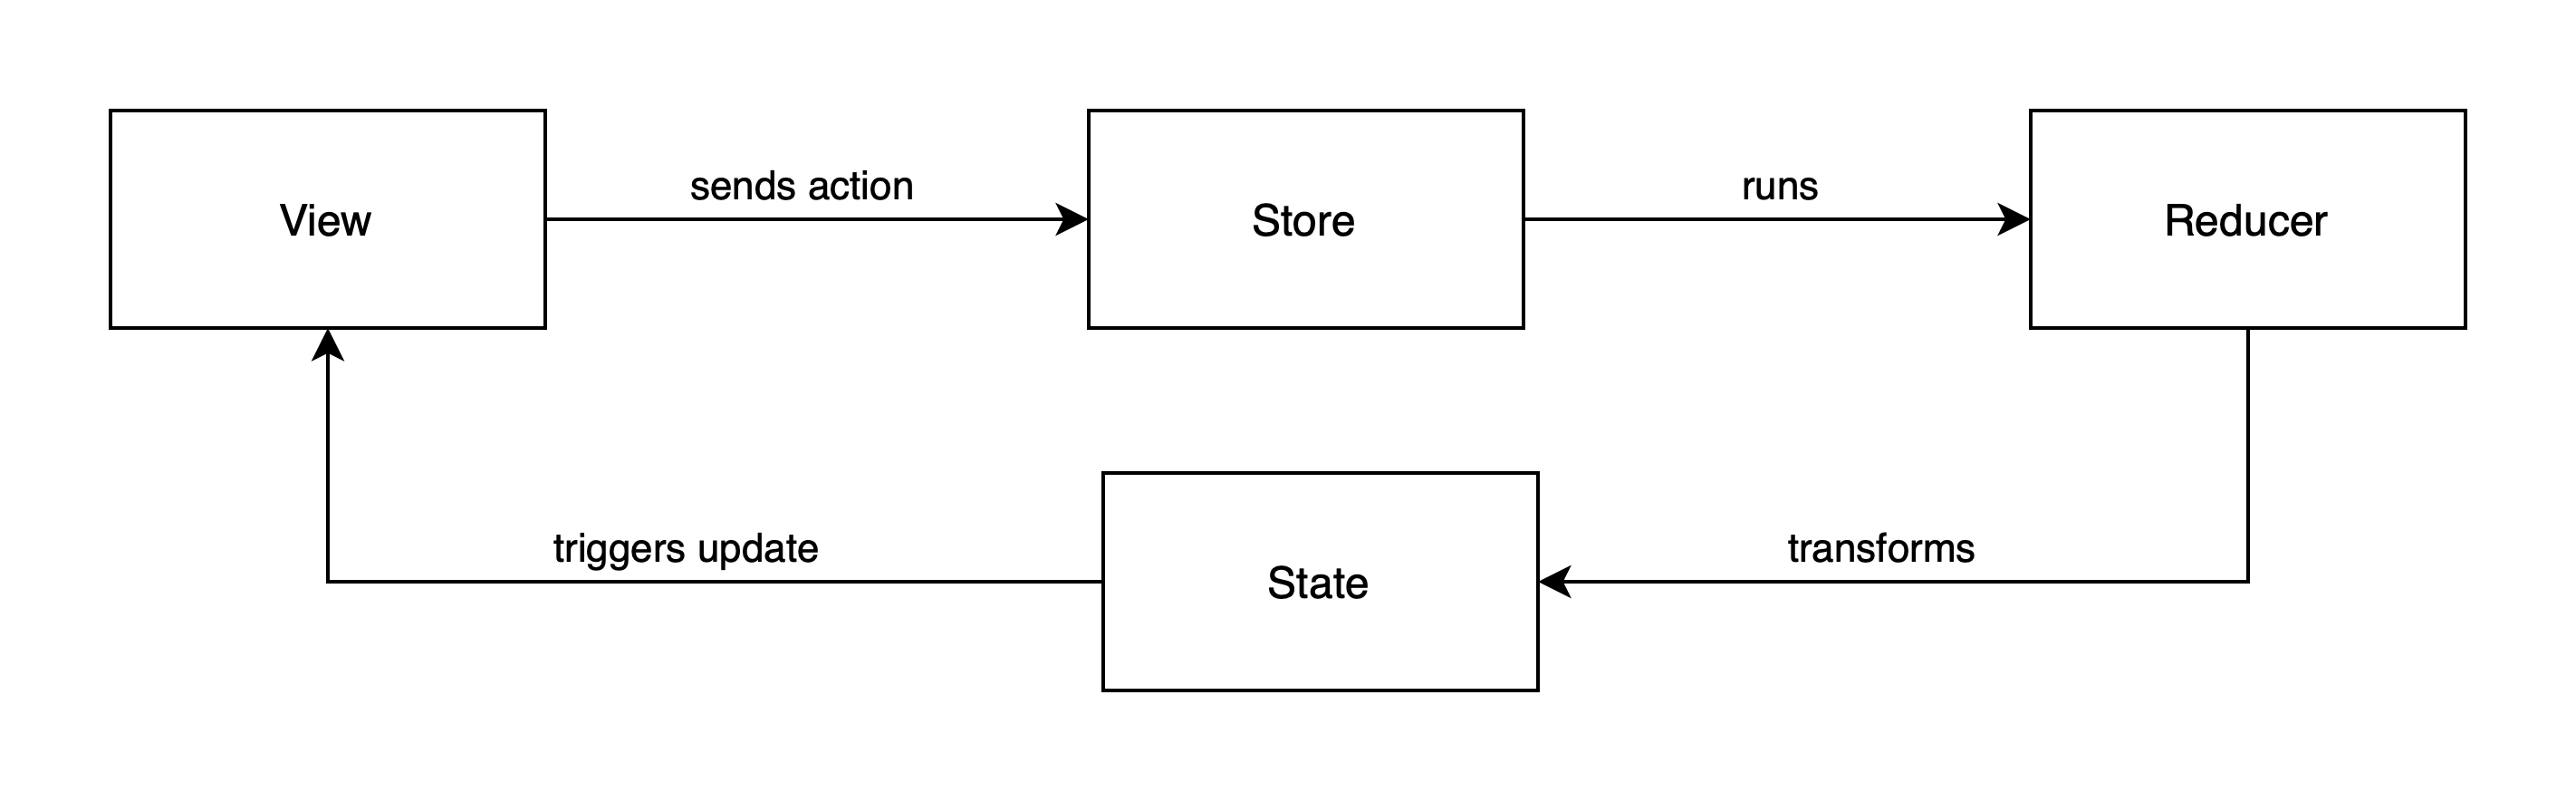 Flow in TCA — The view sends an action to the store, which calls the reducer. This updates the state and triggers an update of the view.